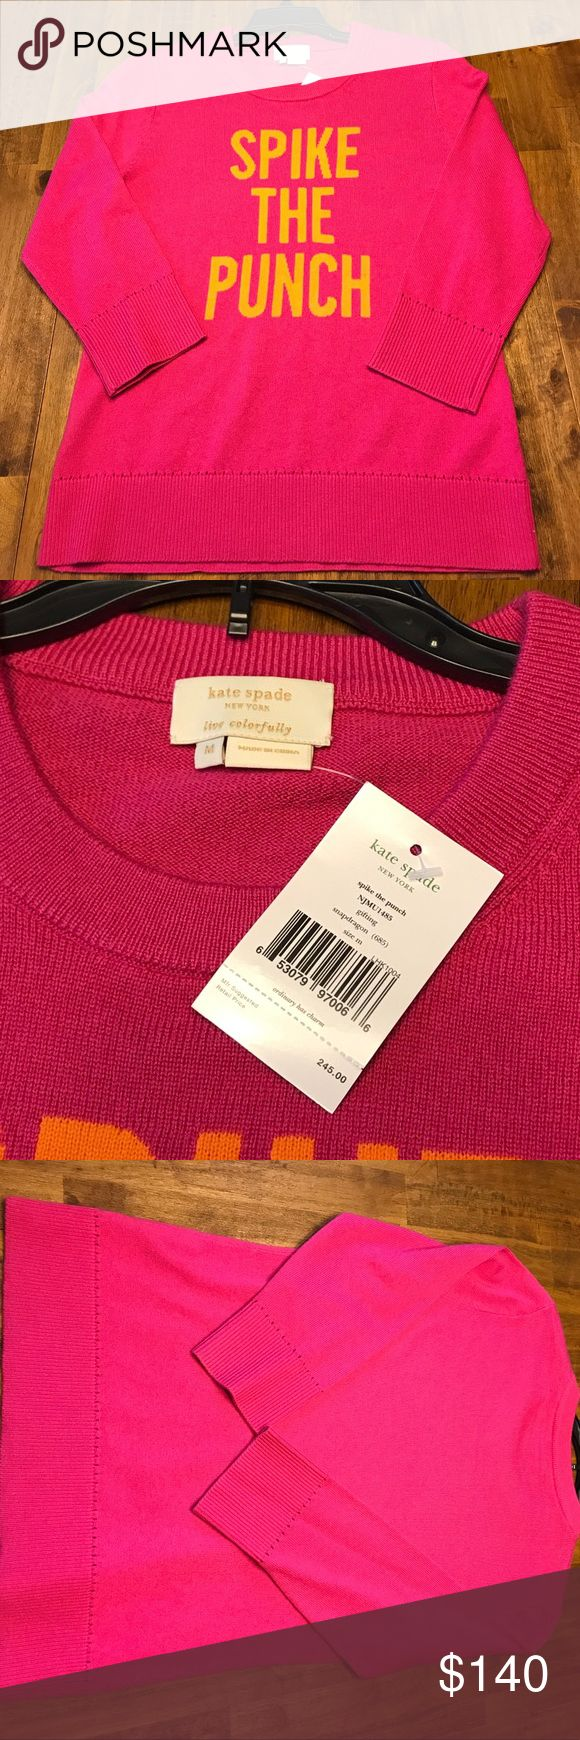 Selling this Kate Spade Medium Pink Sweater Spike the Punch New on Poshmark! My username is: pickypocahontas. #shopmycloset #poshmark #fashion #shopping #style #forsale #kate spade #Sweaters